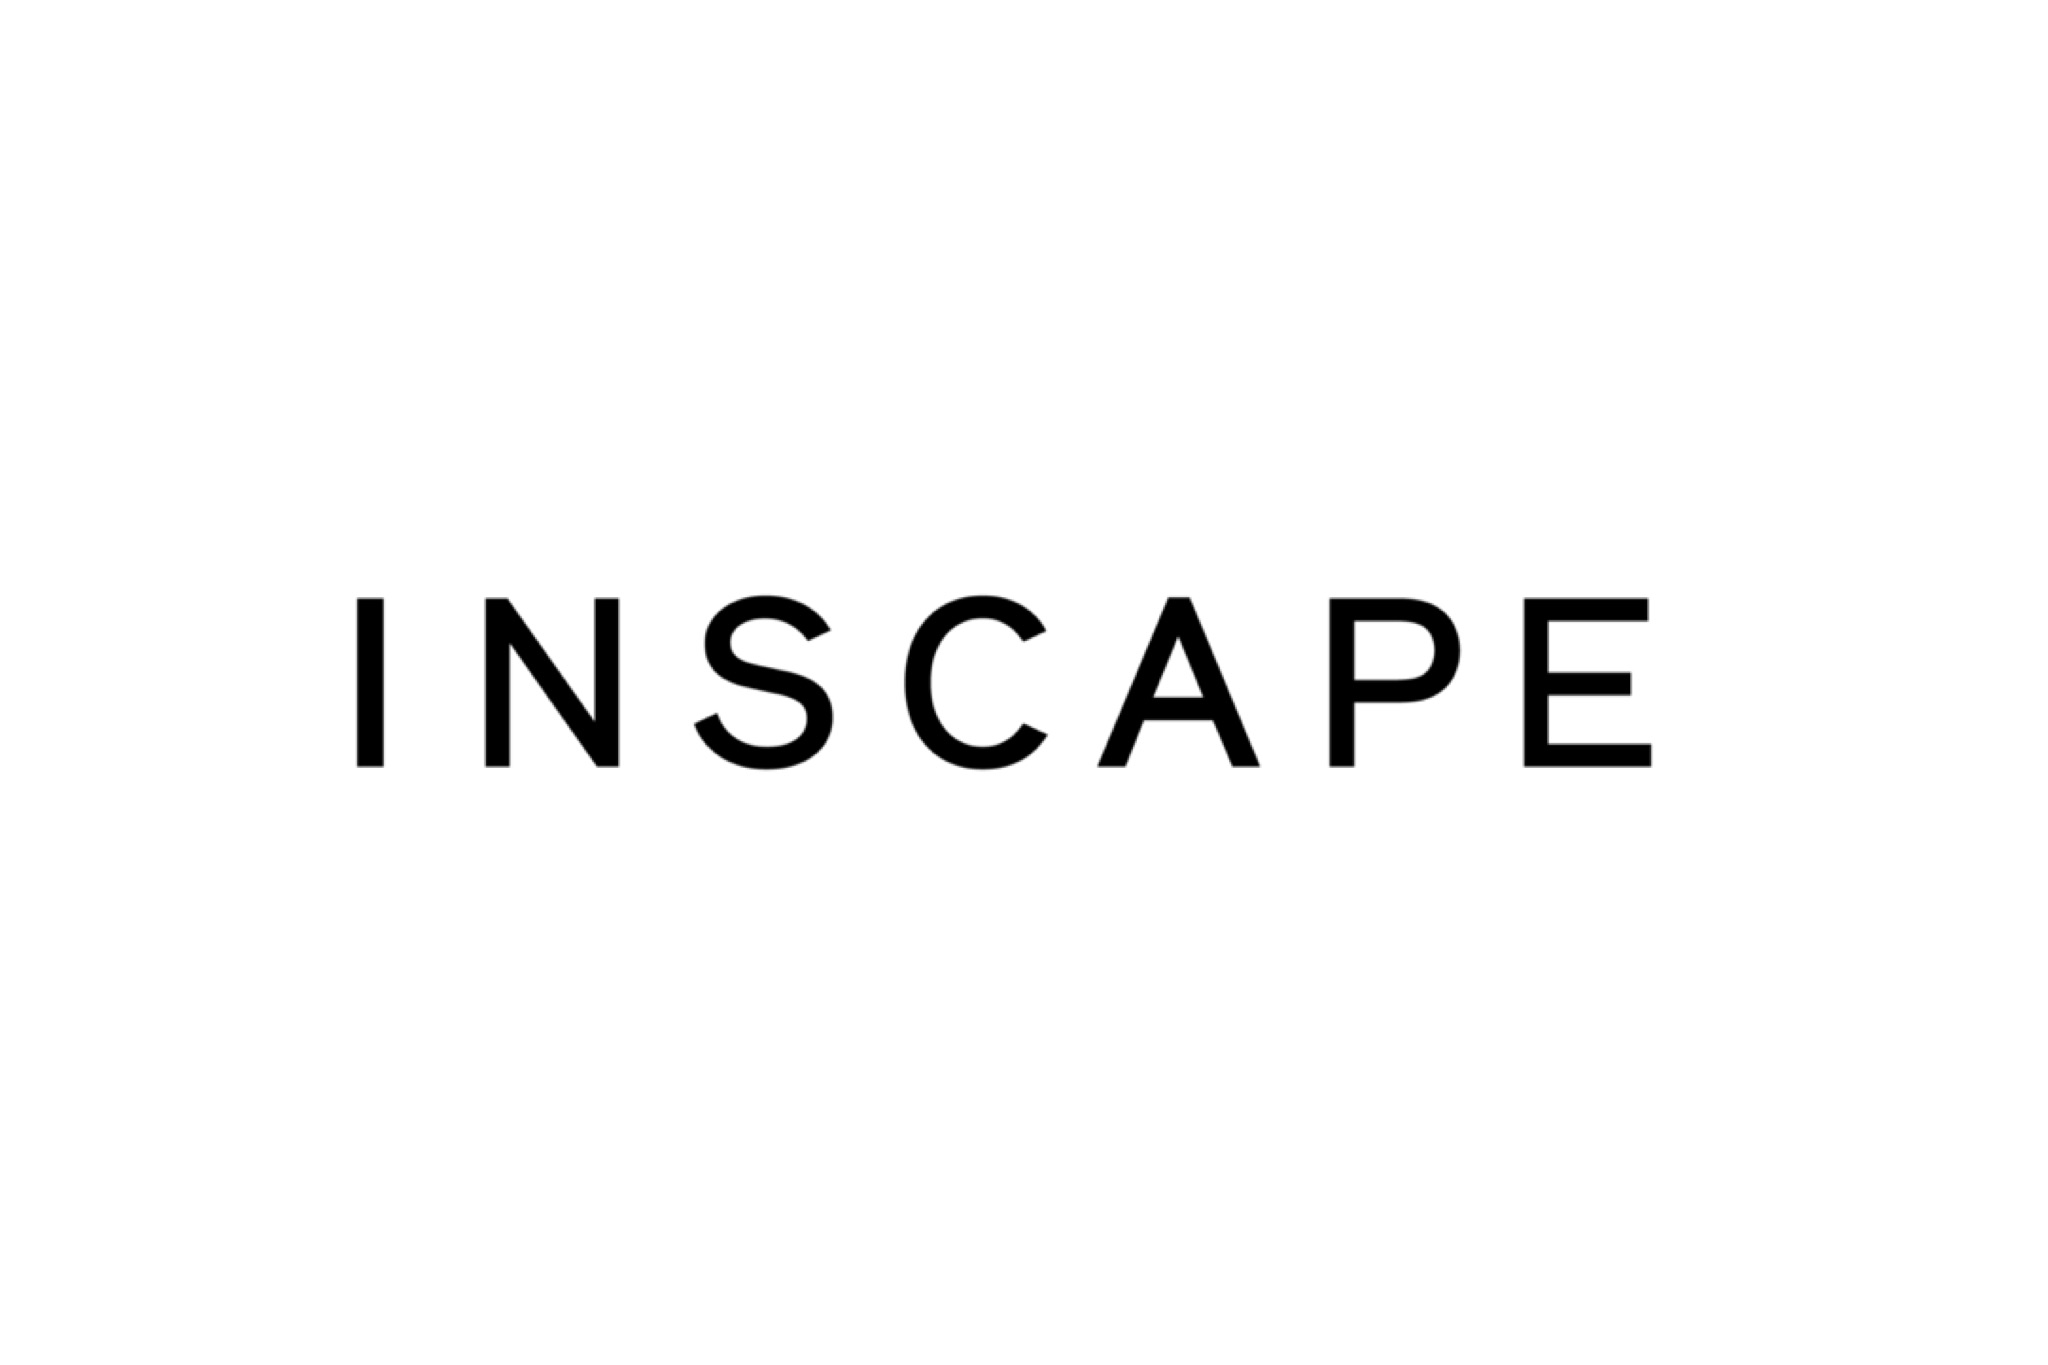 INSCAPE - audio guided meditation and relaxation studio with subtle ambient textures for a calm and soothing atmosphere with minimal and non-distracting instrumentation. - www.inscape.life